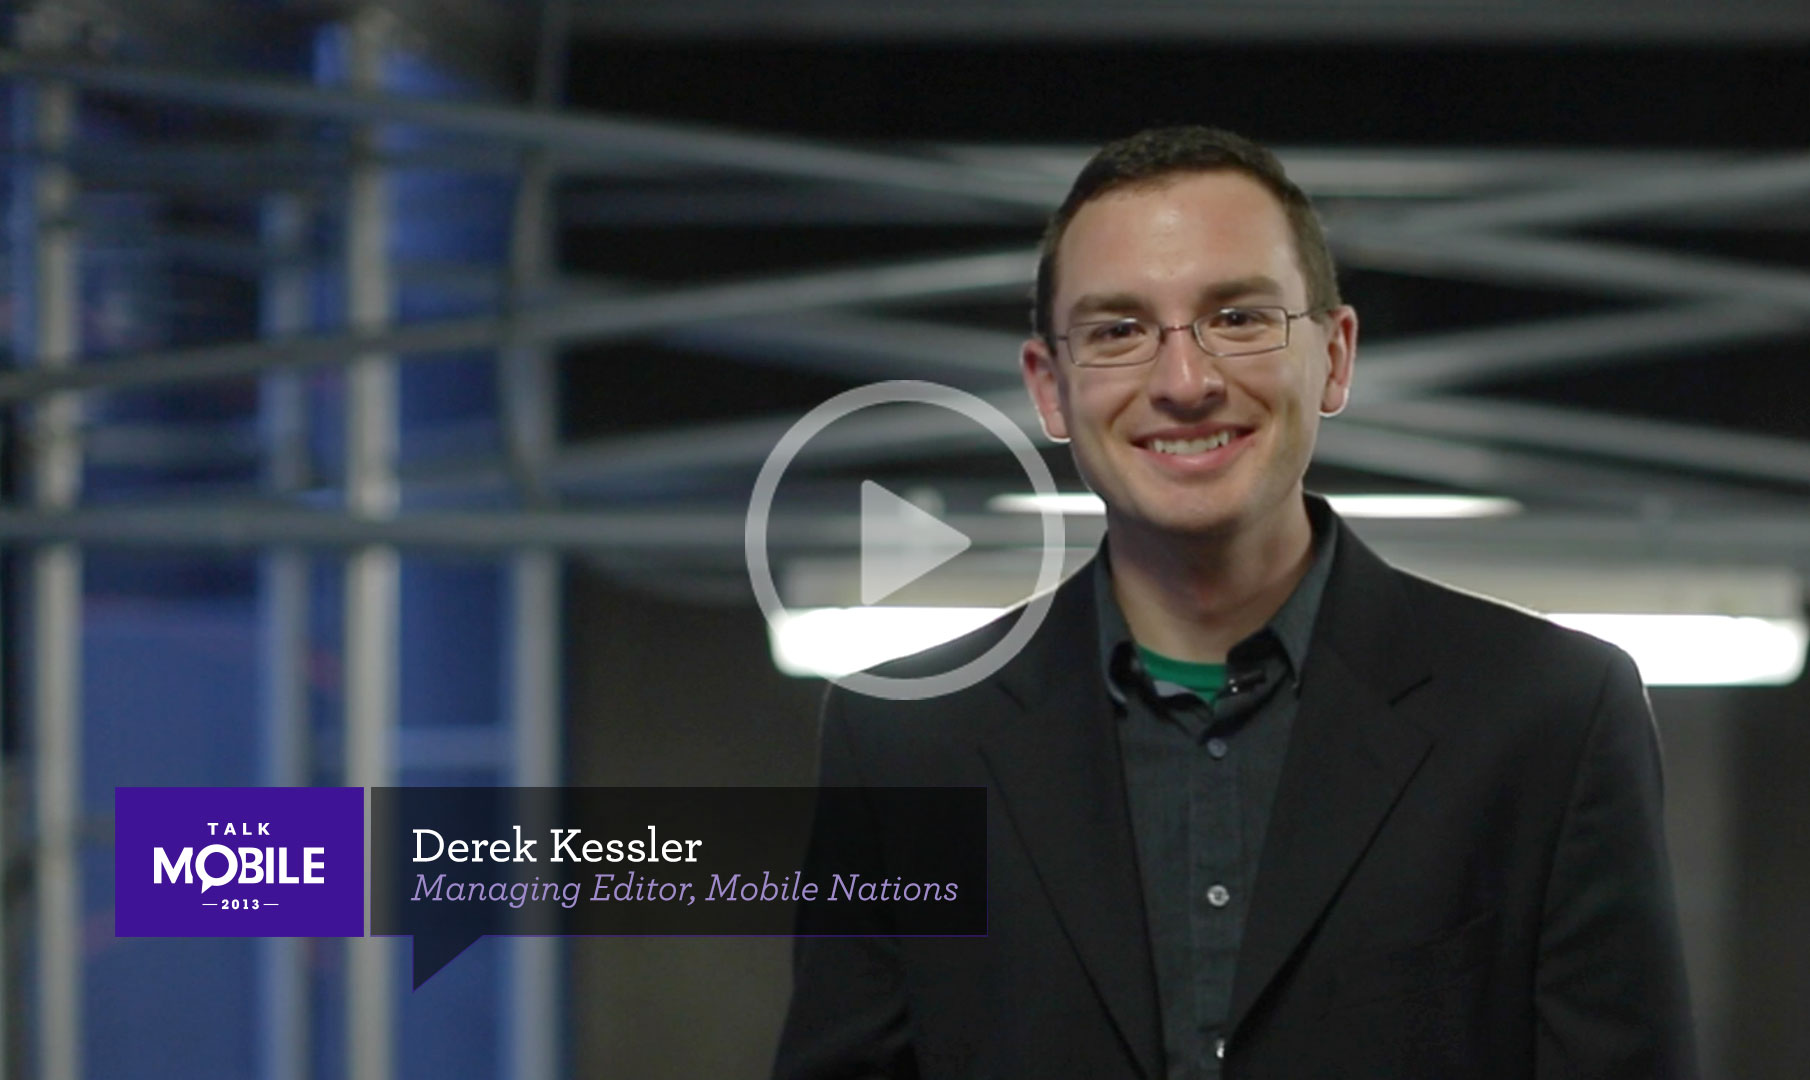 Watch Derek Kessler talk about balancing specs.